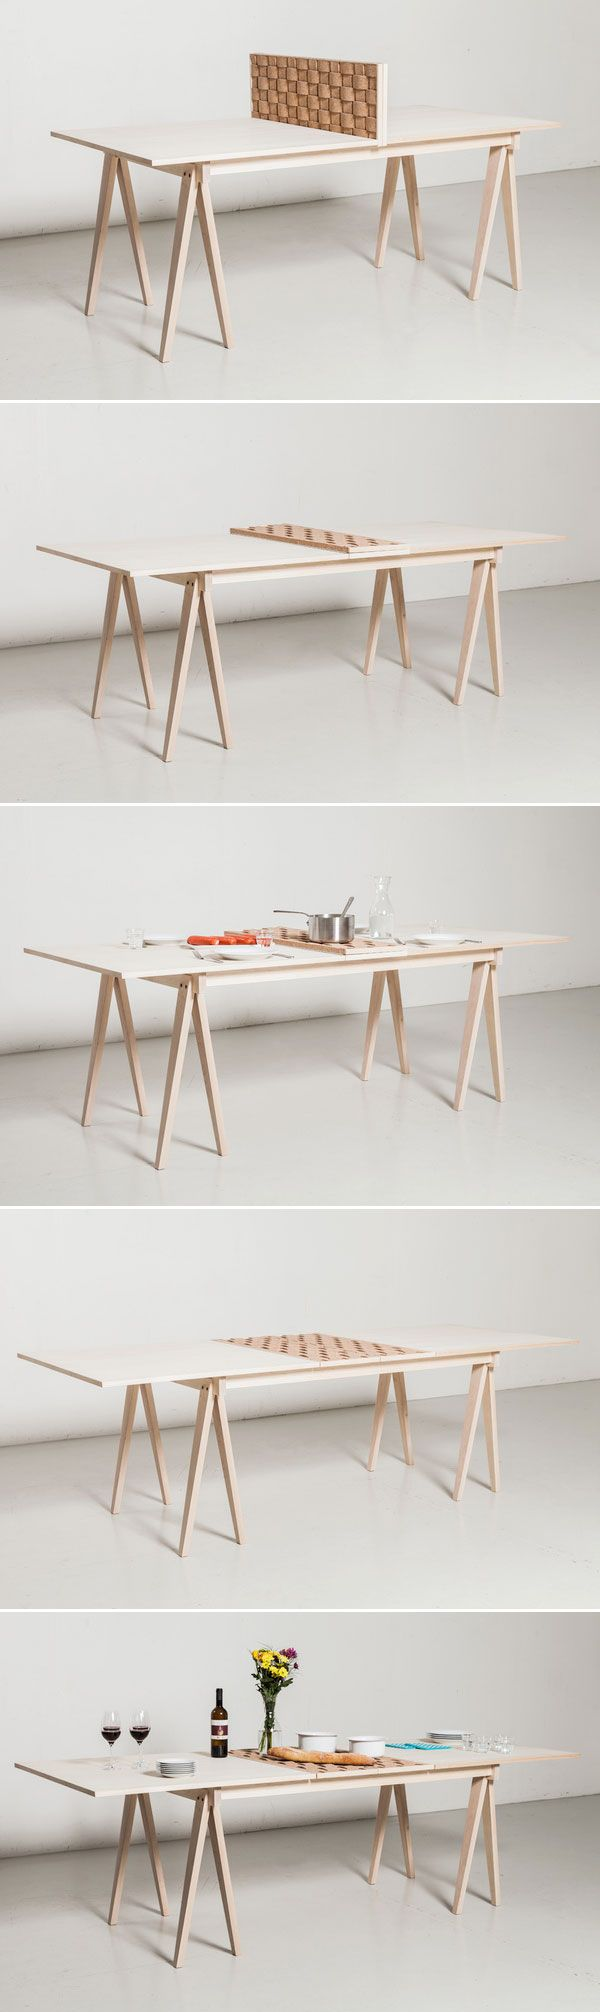 Best Extendable Dining Tables Images On Pinterest Dinner - Extendable dining table with folding chairs